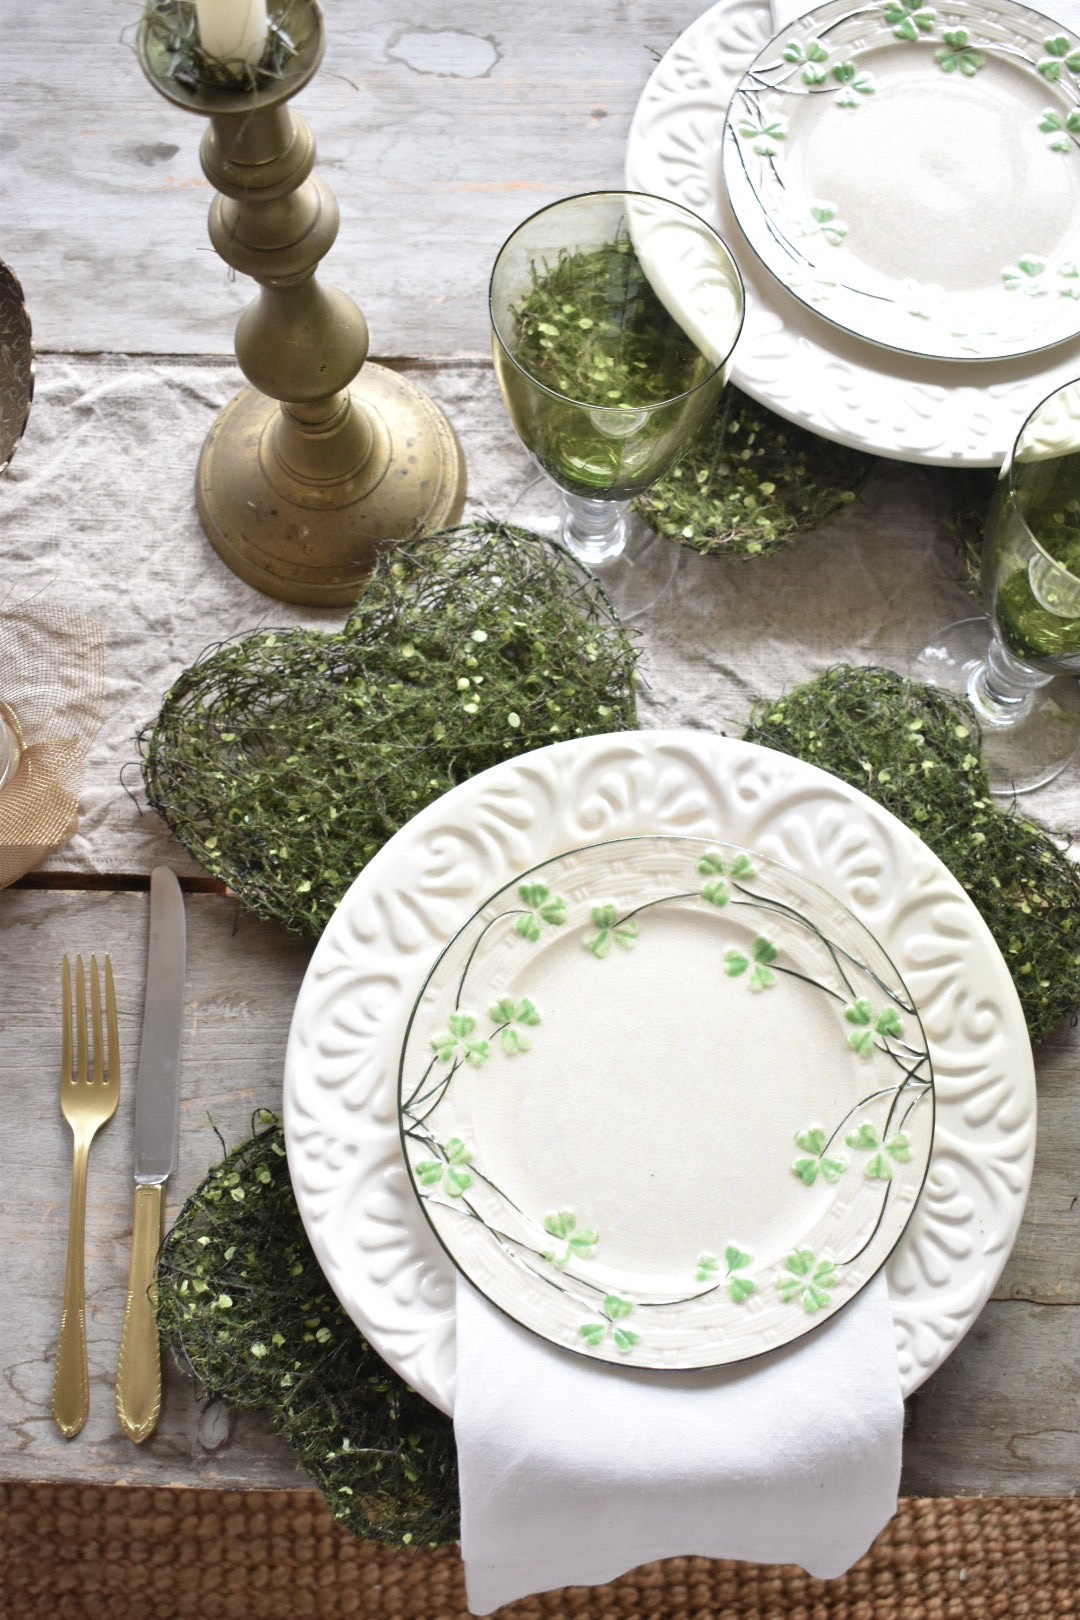 St. Patrick's Day place setting